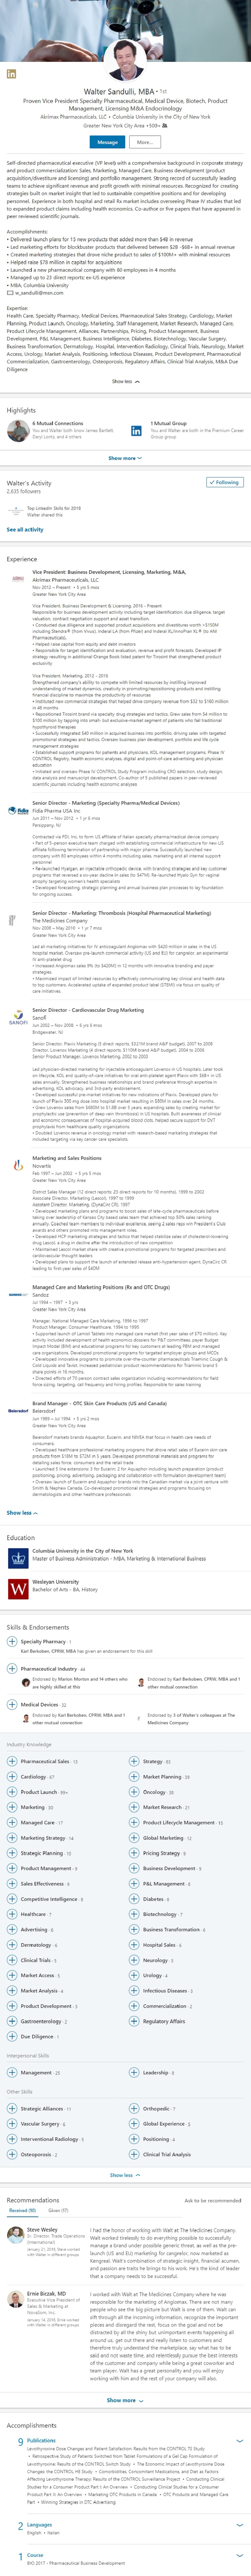 Pharmaceutical, Medical Device Sales LinkedIn Profile Example